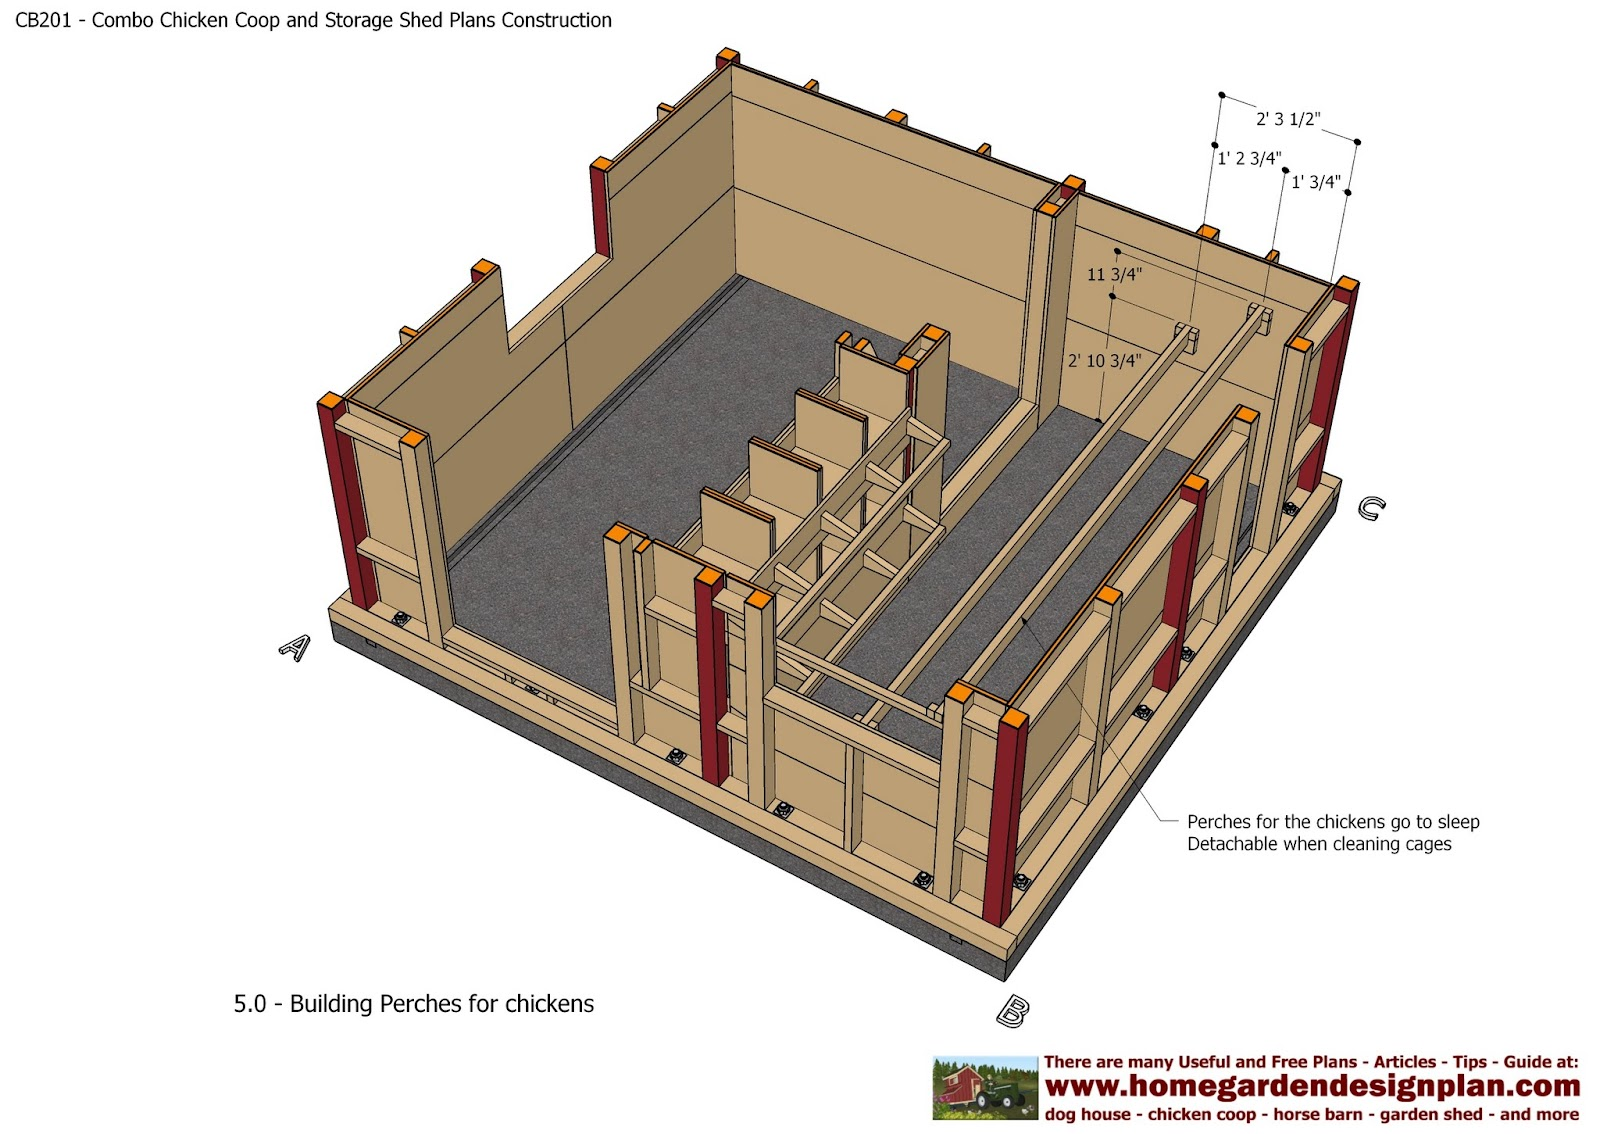 Shed plans colonial style cb201 combo plans chicken coop for Garden shed designs and plans